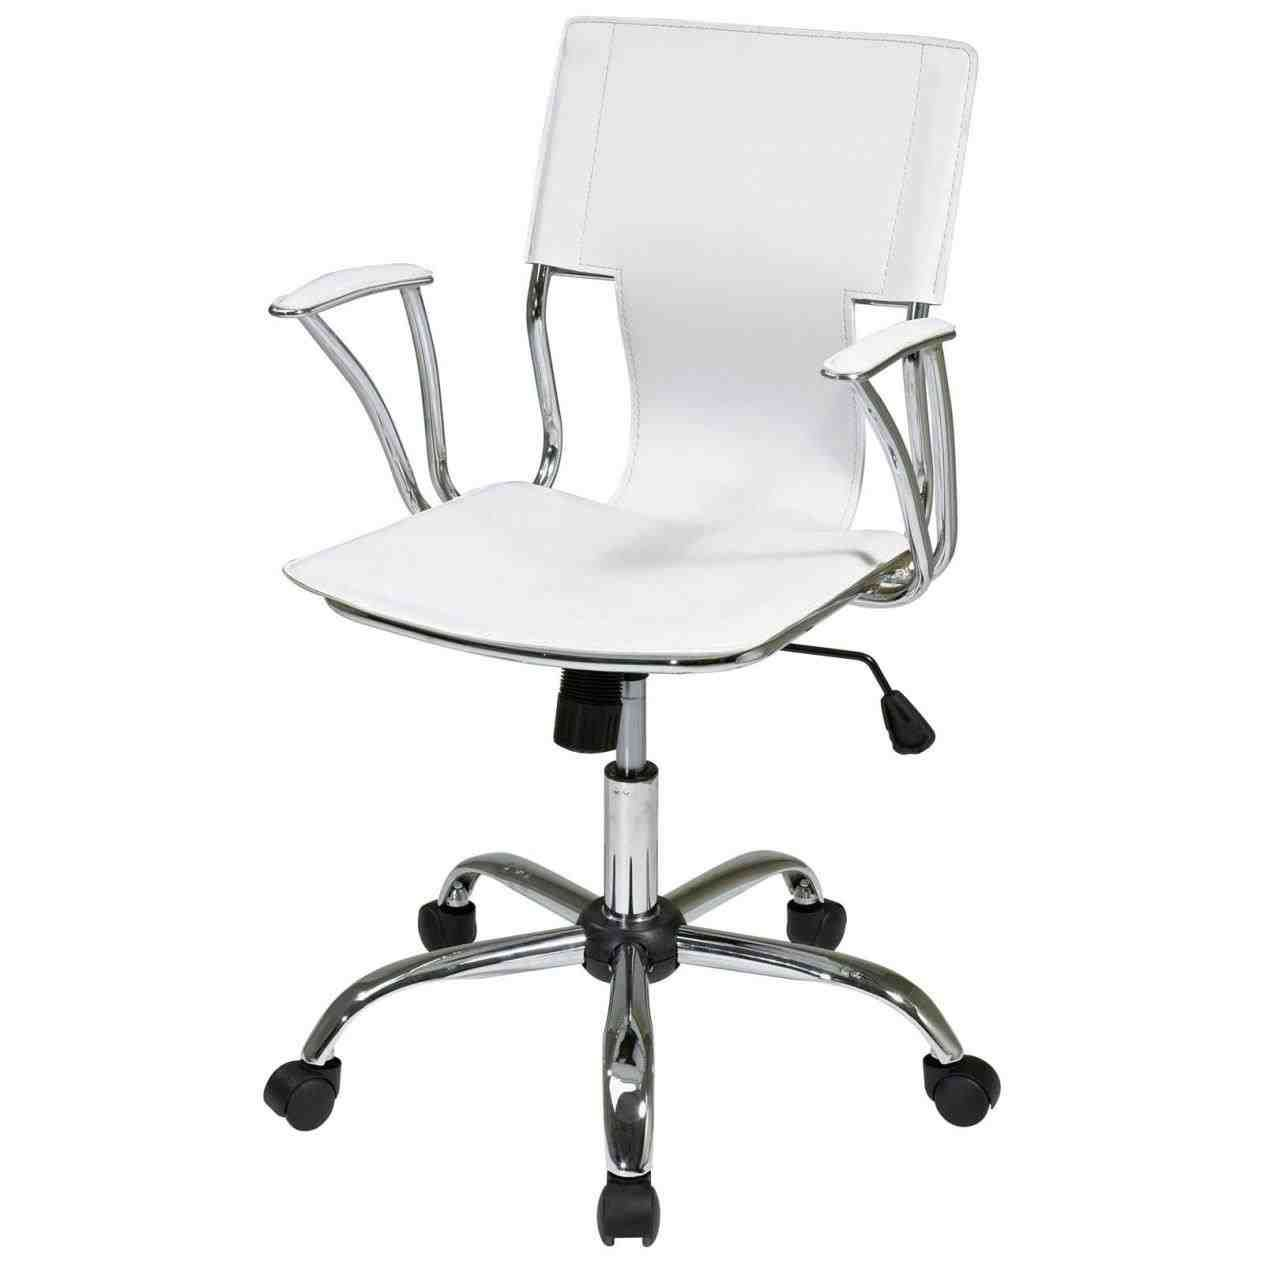 office chair hong kong covers-n-more inc. houston tx cheap chairs argos home interior design delectable work desk iranews space blog for cool and decorating room law